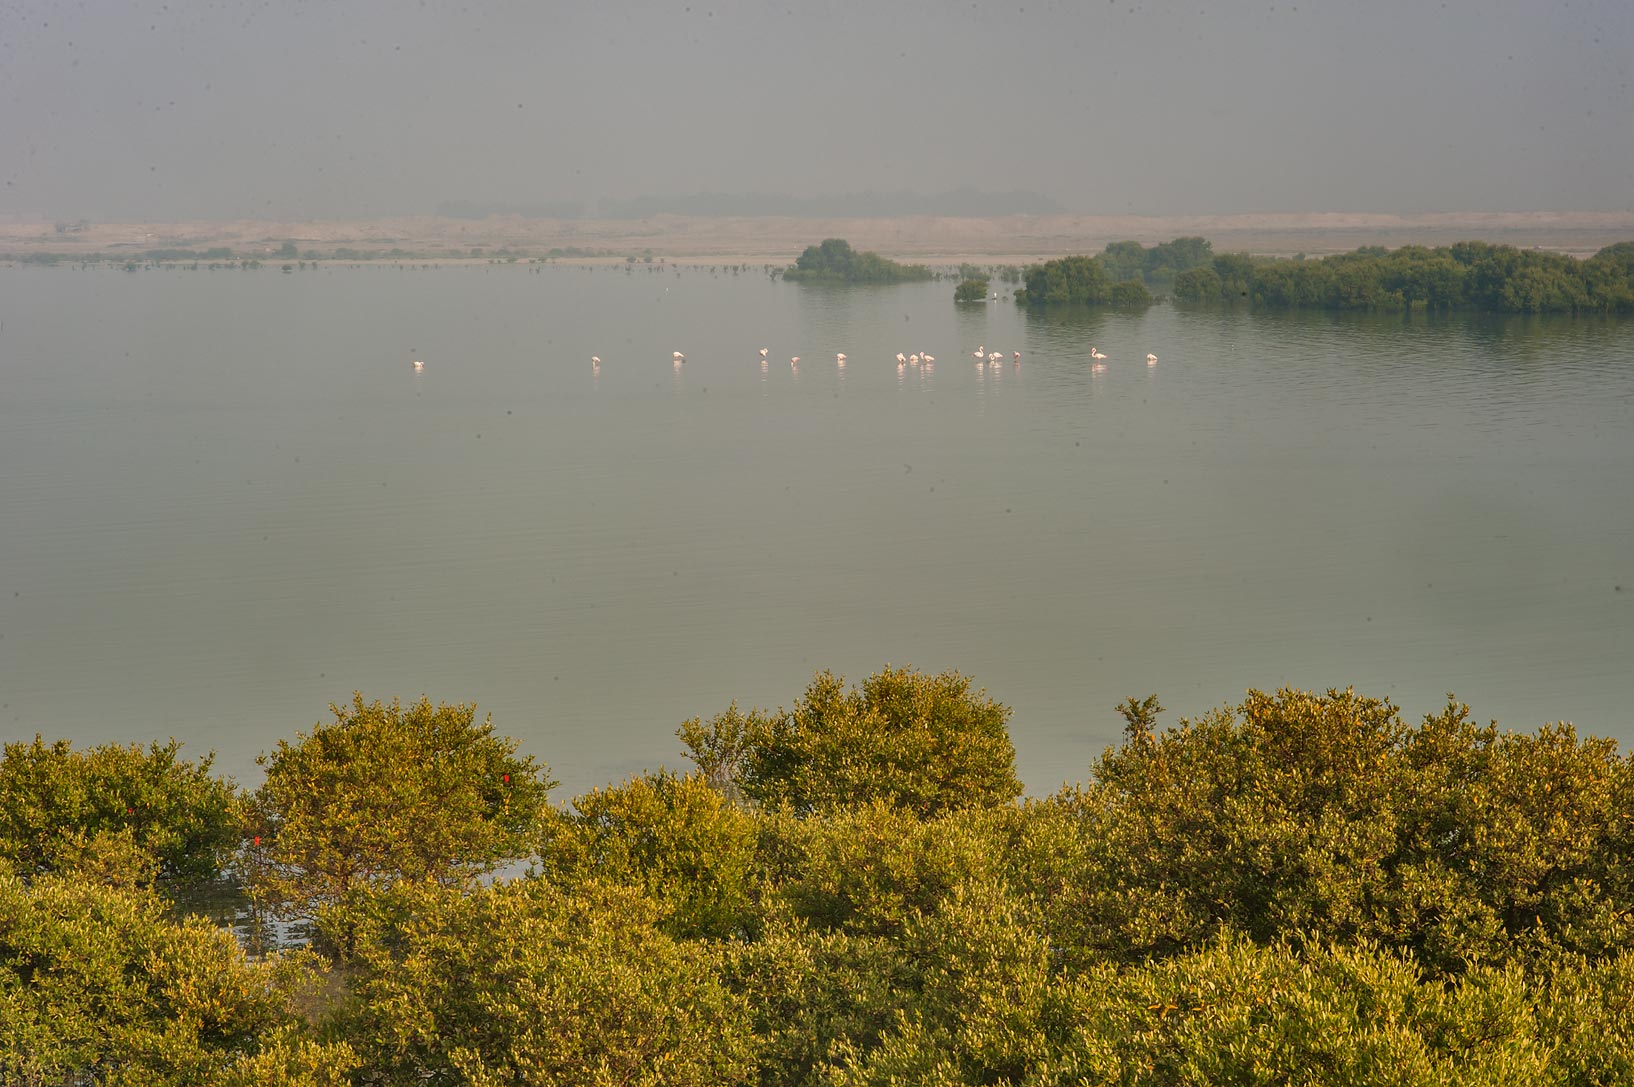 Mangrove forest and flamingo birds on north side...Jazirat Bin Ghanim). Al Khor, Qatar